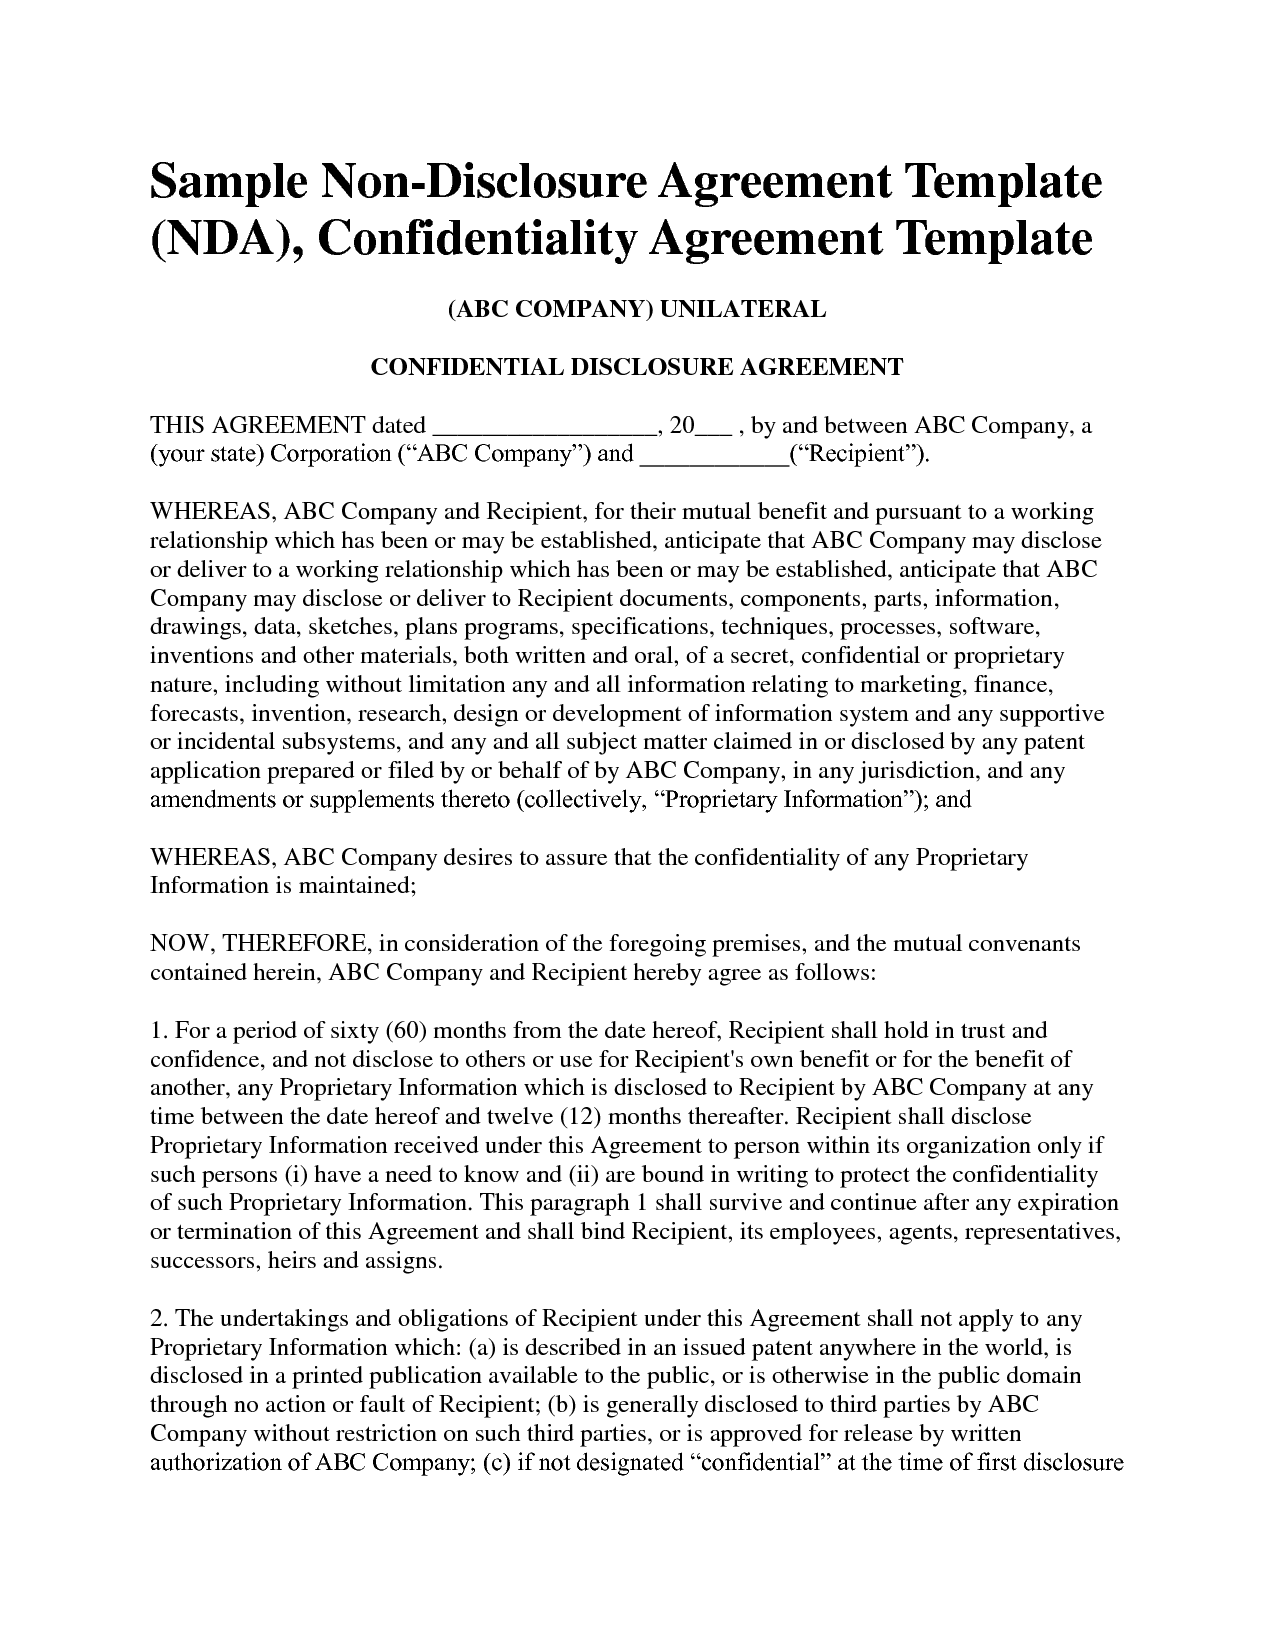 Non Disclosure Agreement Template Free Sample Nda Template Mvrsqrn